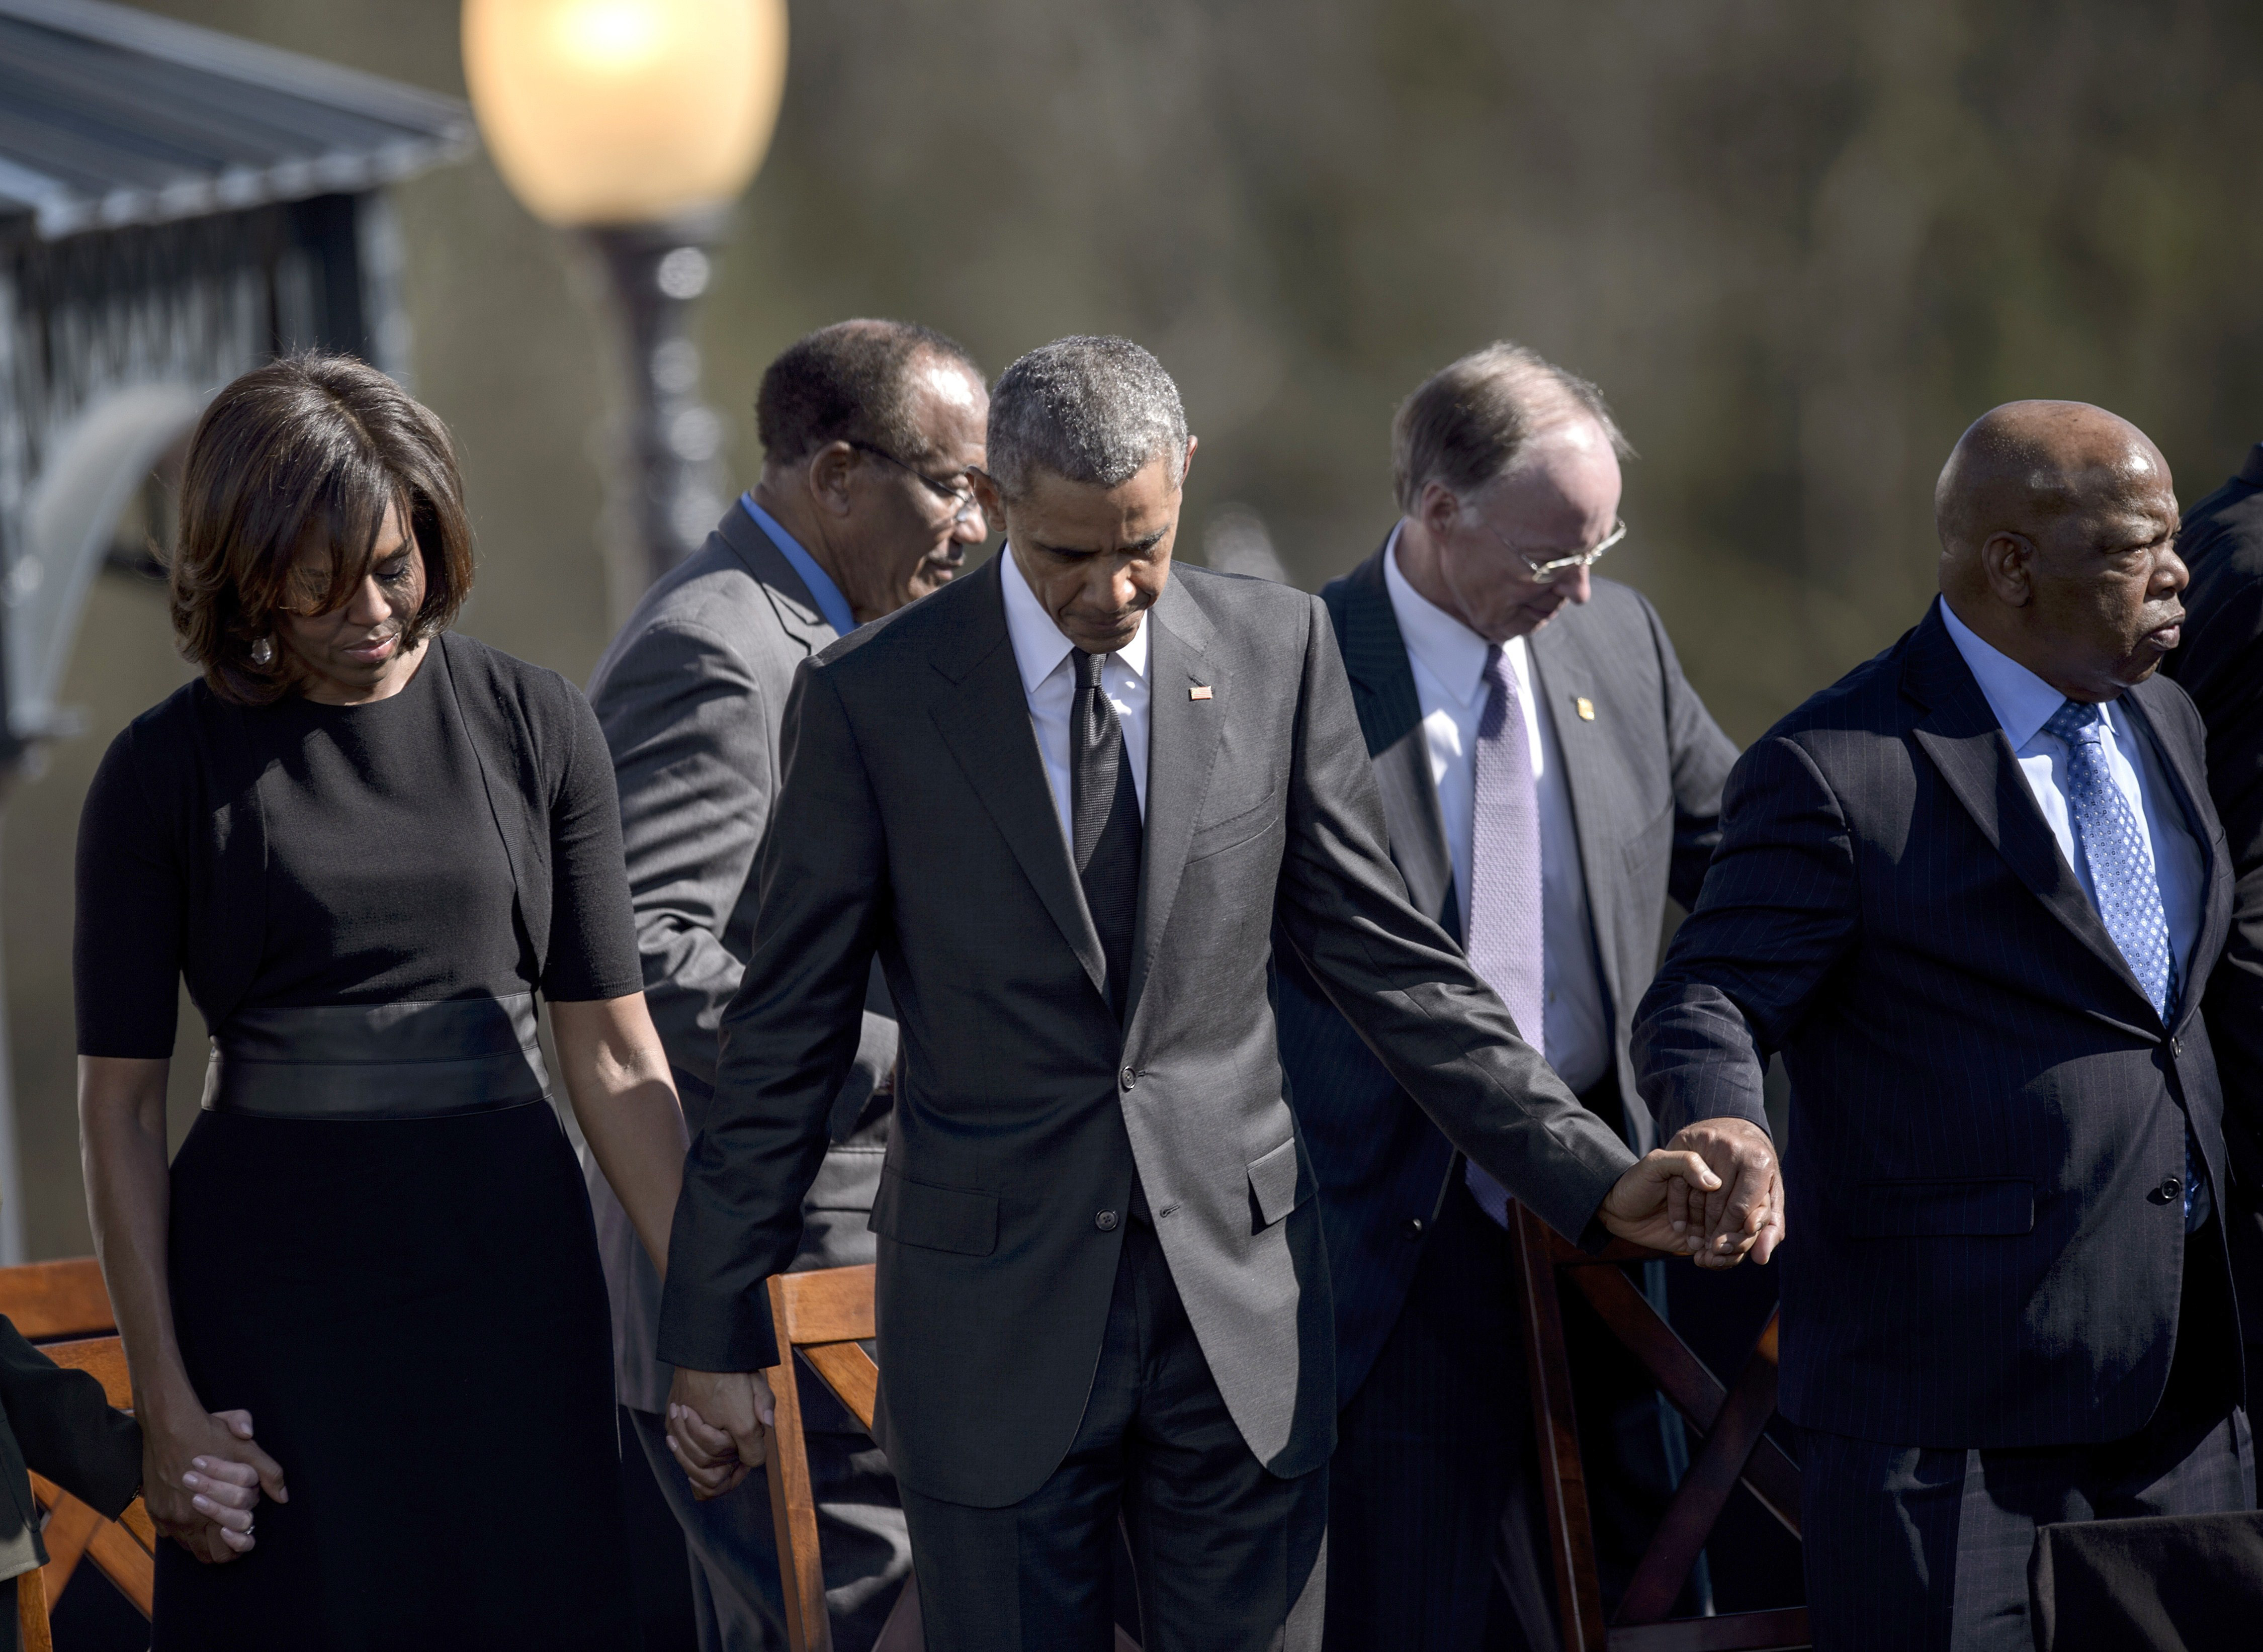 First Lady Michelle Obama, US President Barack Obama, Robert J. Bentley and US Representative John Lewis bow their heads for a prayer at the Edmund Pettus Bridge in Selma, Alabama, on March 7, 2015.